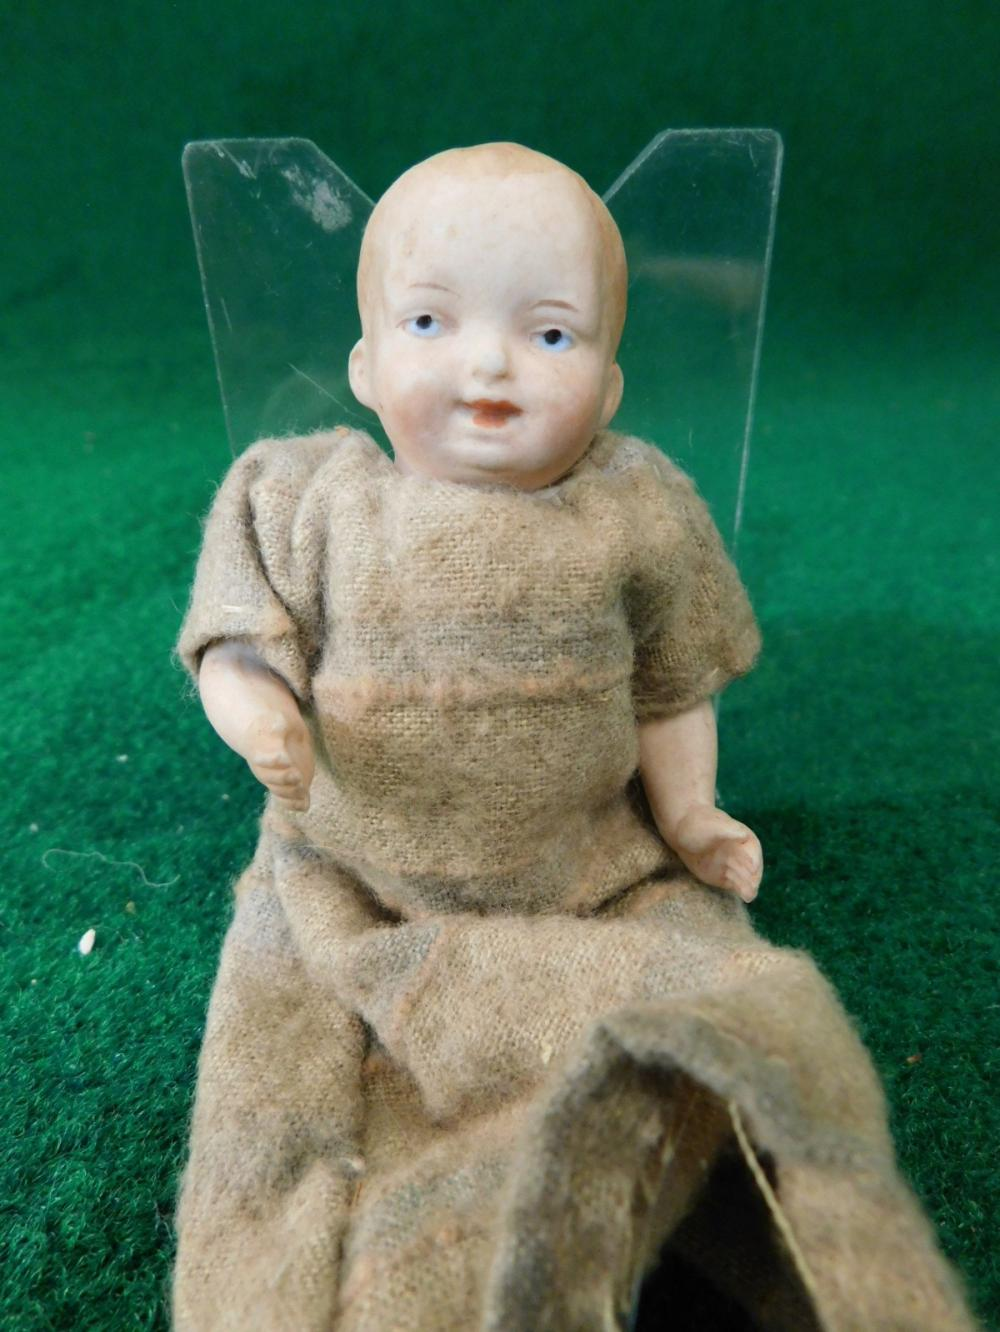 ANTIQUE DOLL MISSING LEGS